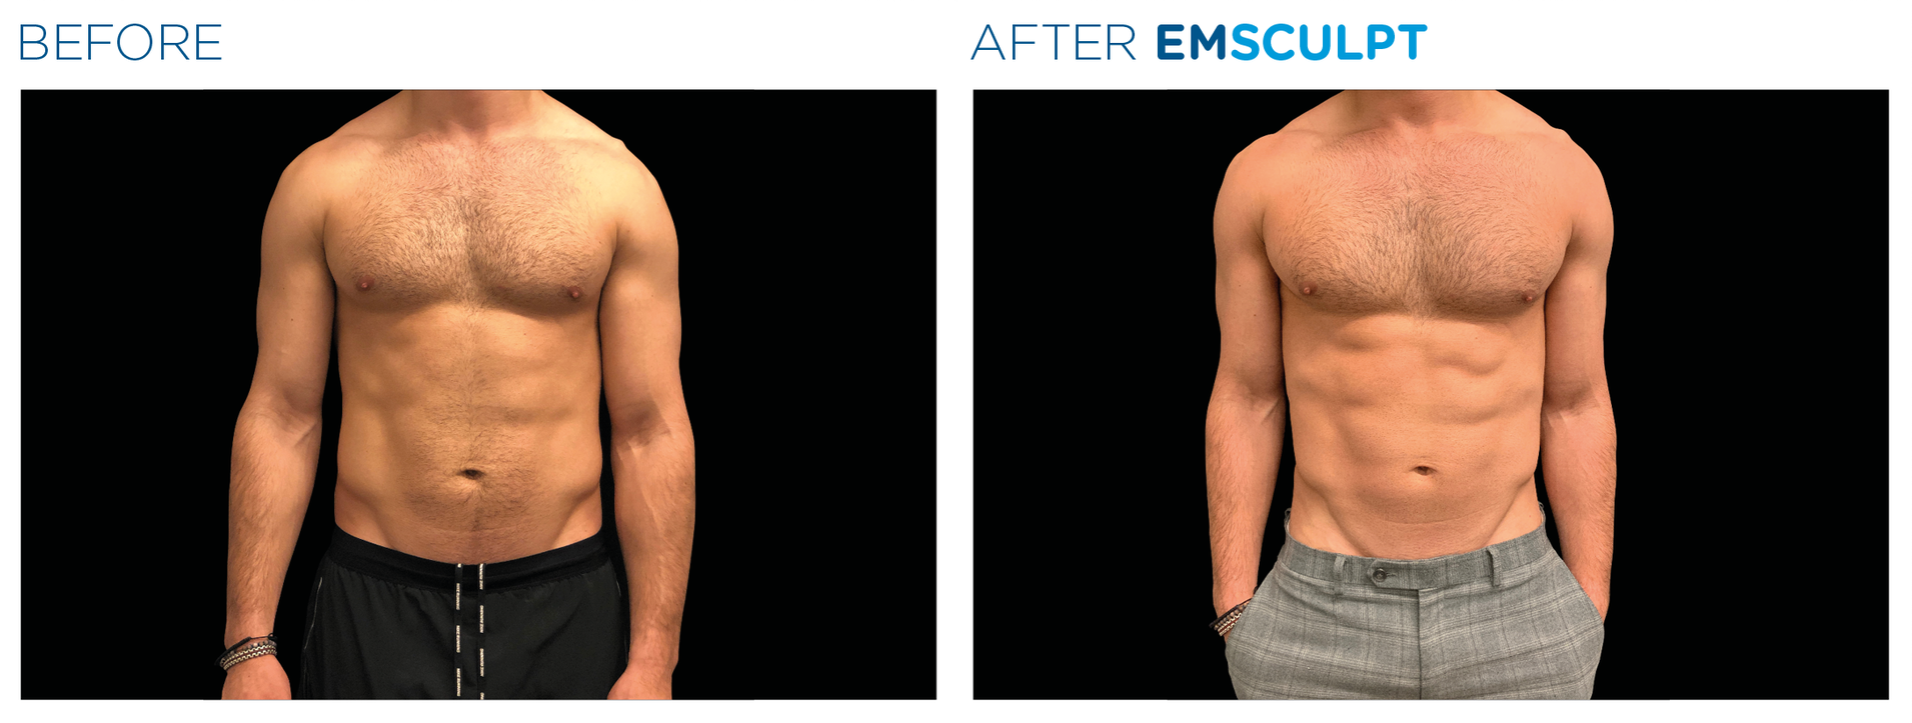 emsculpt male before and after abdomen toning, definition